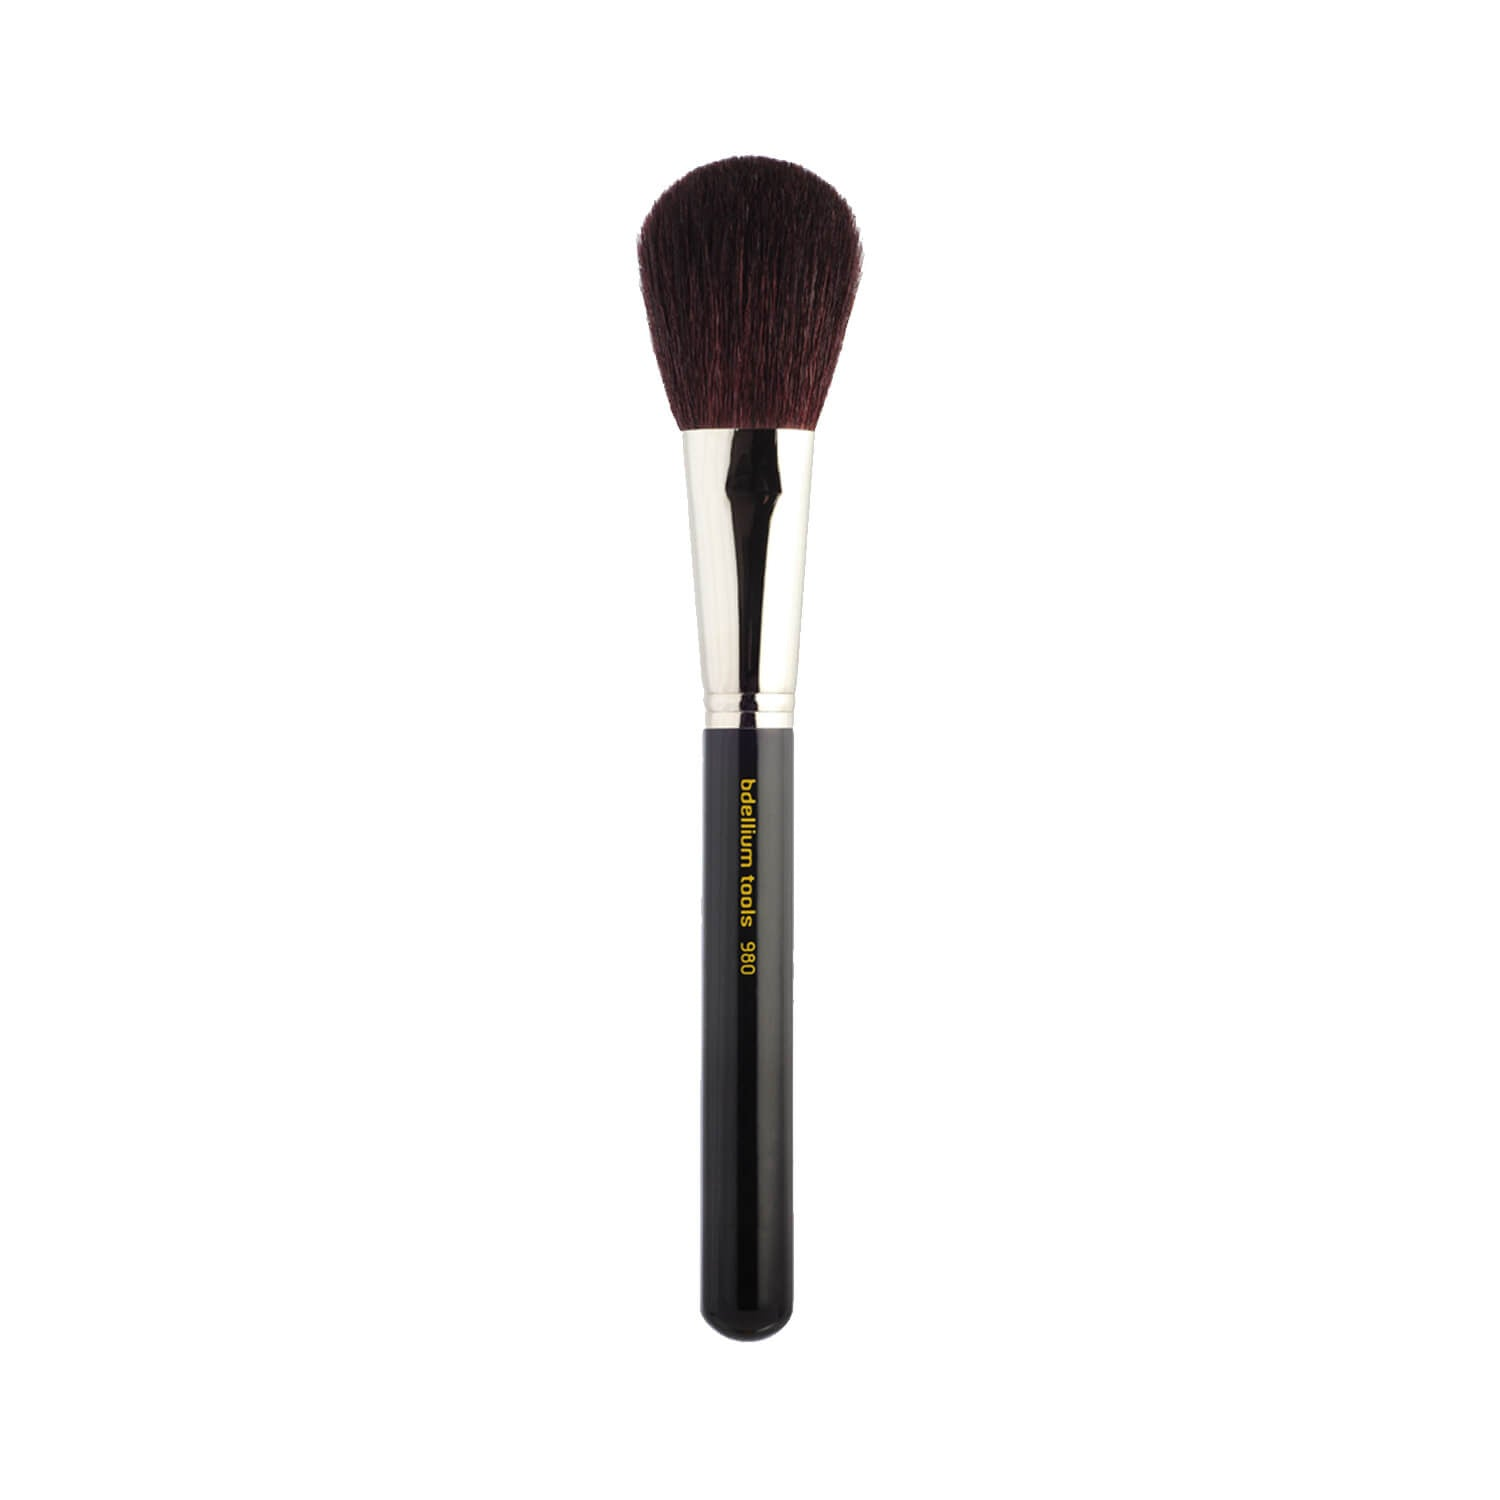 BDellium Tools Maestro Line 980 Large Natural Powder Brush Black